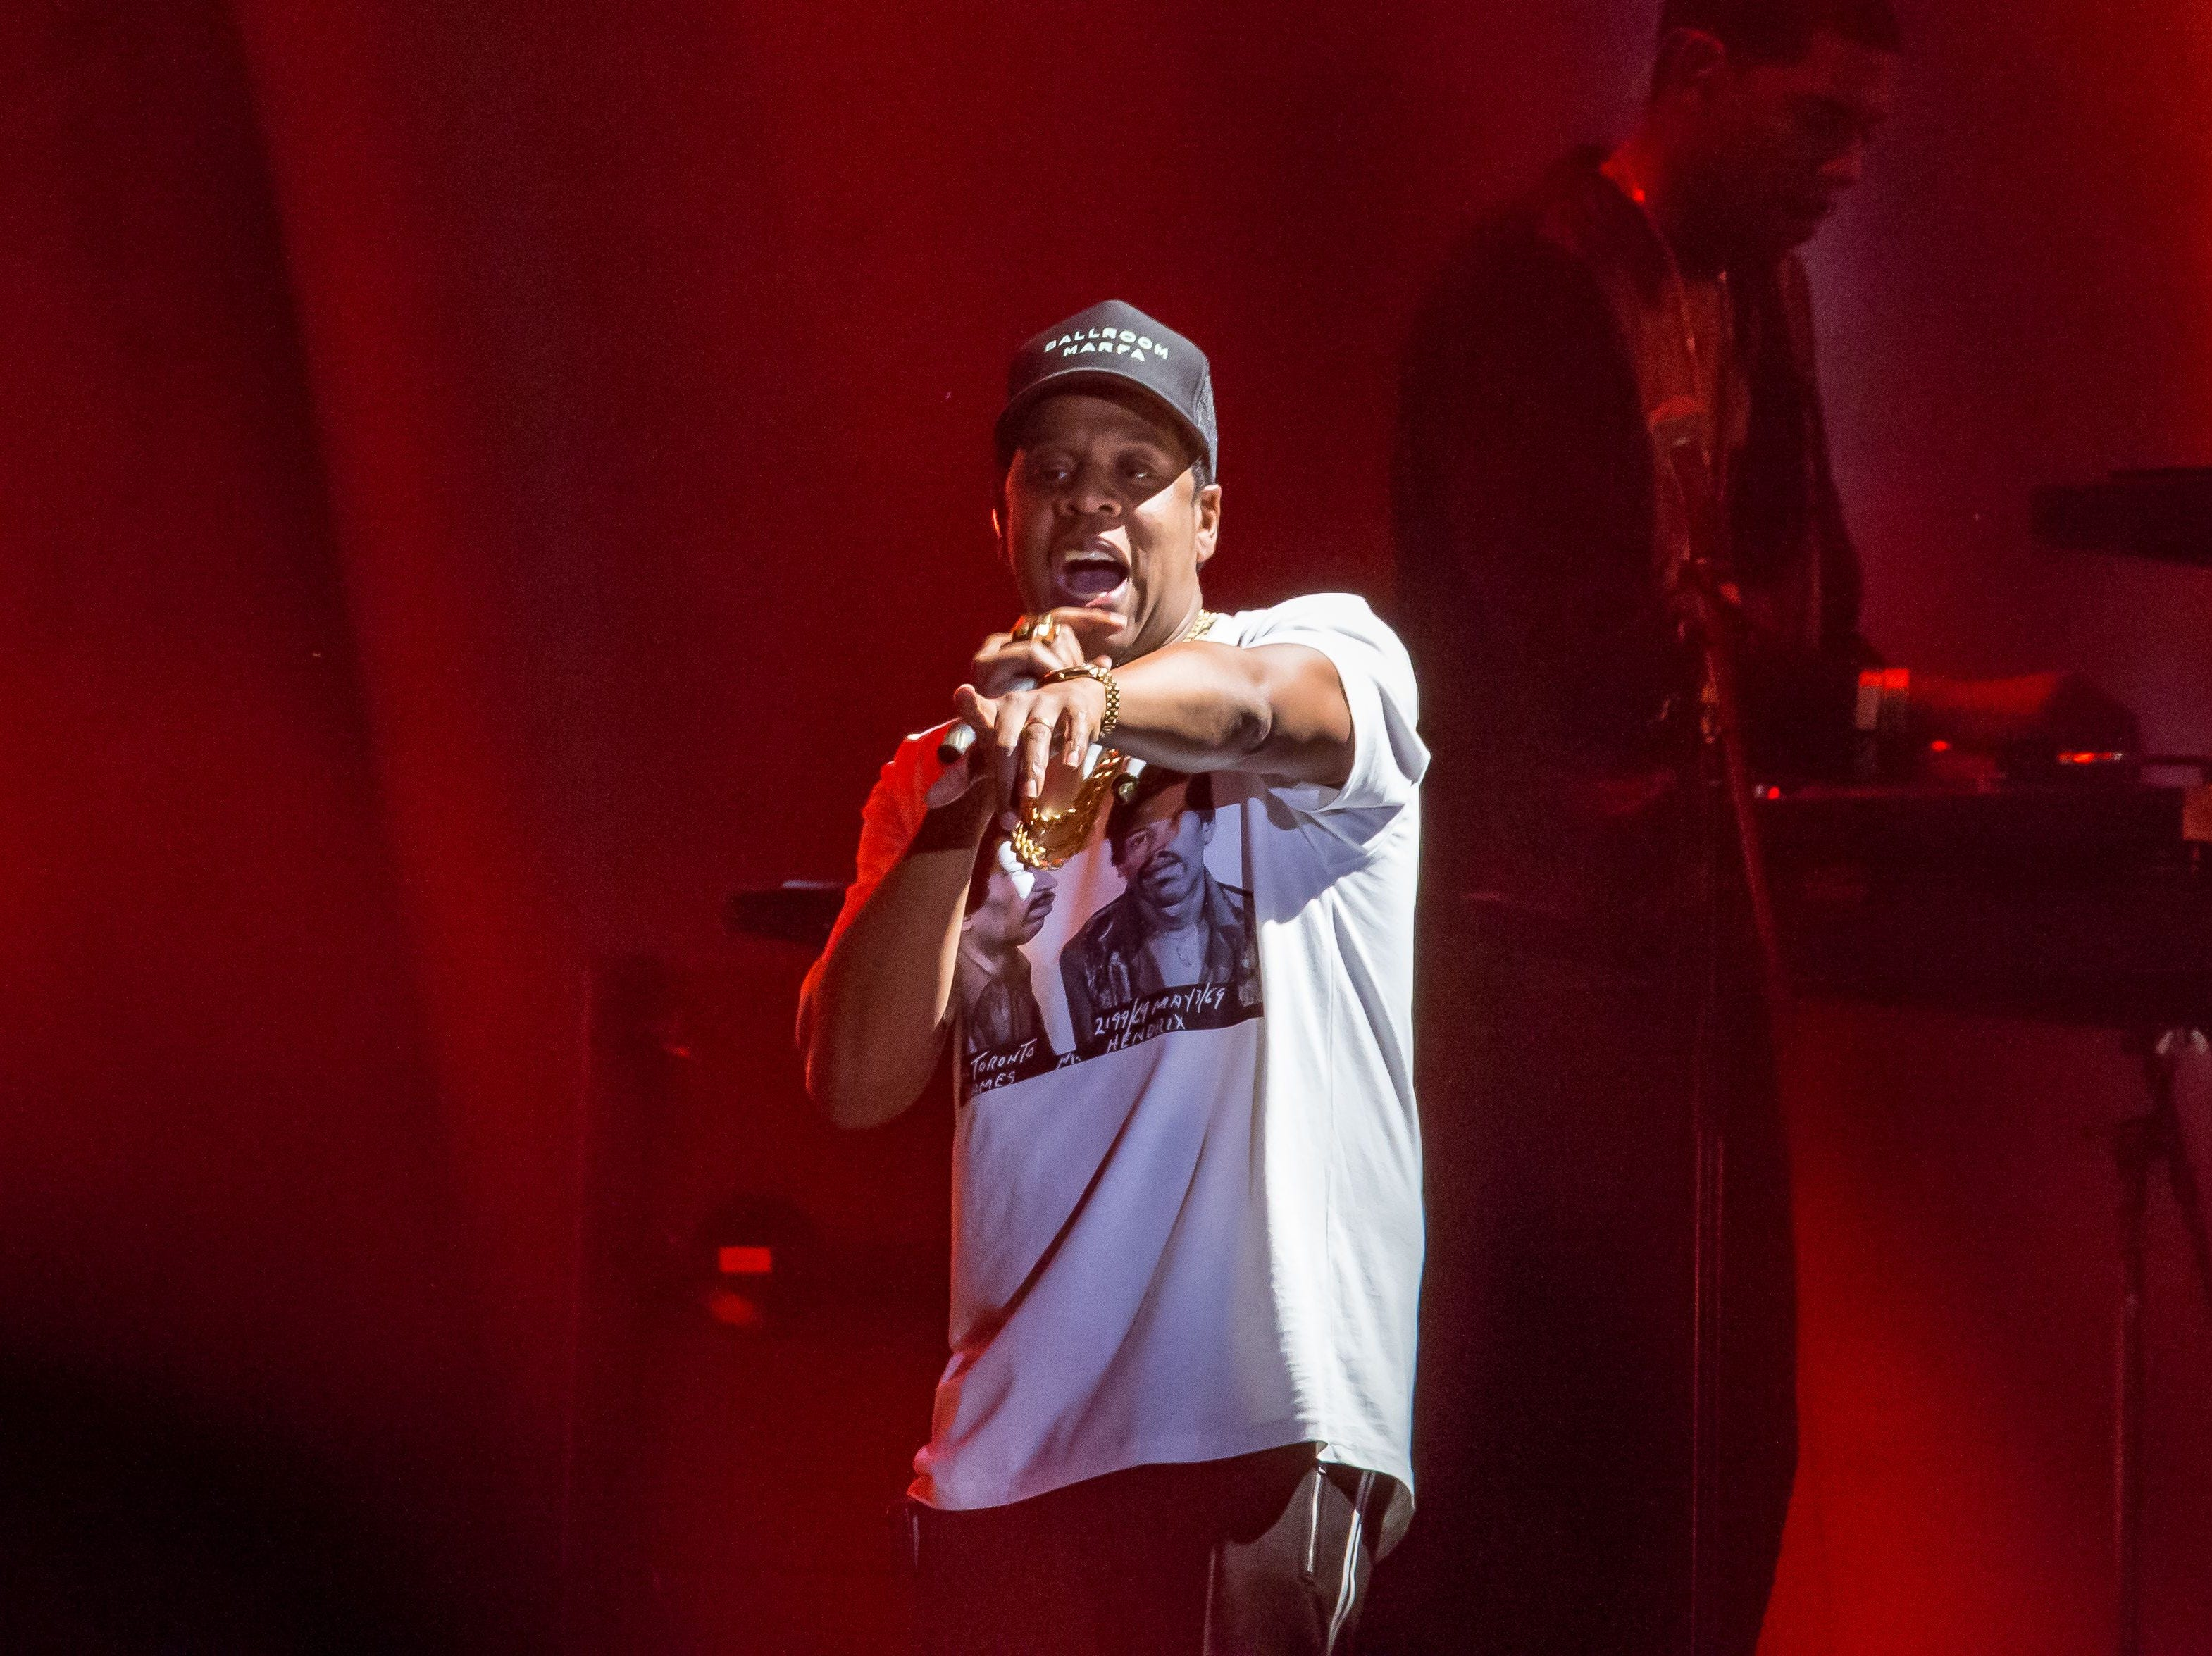 Jay-Z performs in concert on the first day of week two of the Austin City Limits Music Festival at Zilker Park on October 13, 2017 in Austin, Texas. / AFP PHOTO / SUZANNE CORDEIRO        (Photo credit should read SUZANNE CORDEIRO/AFP/Getty Images) [Via MerlinFTP Drop]